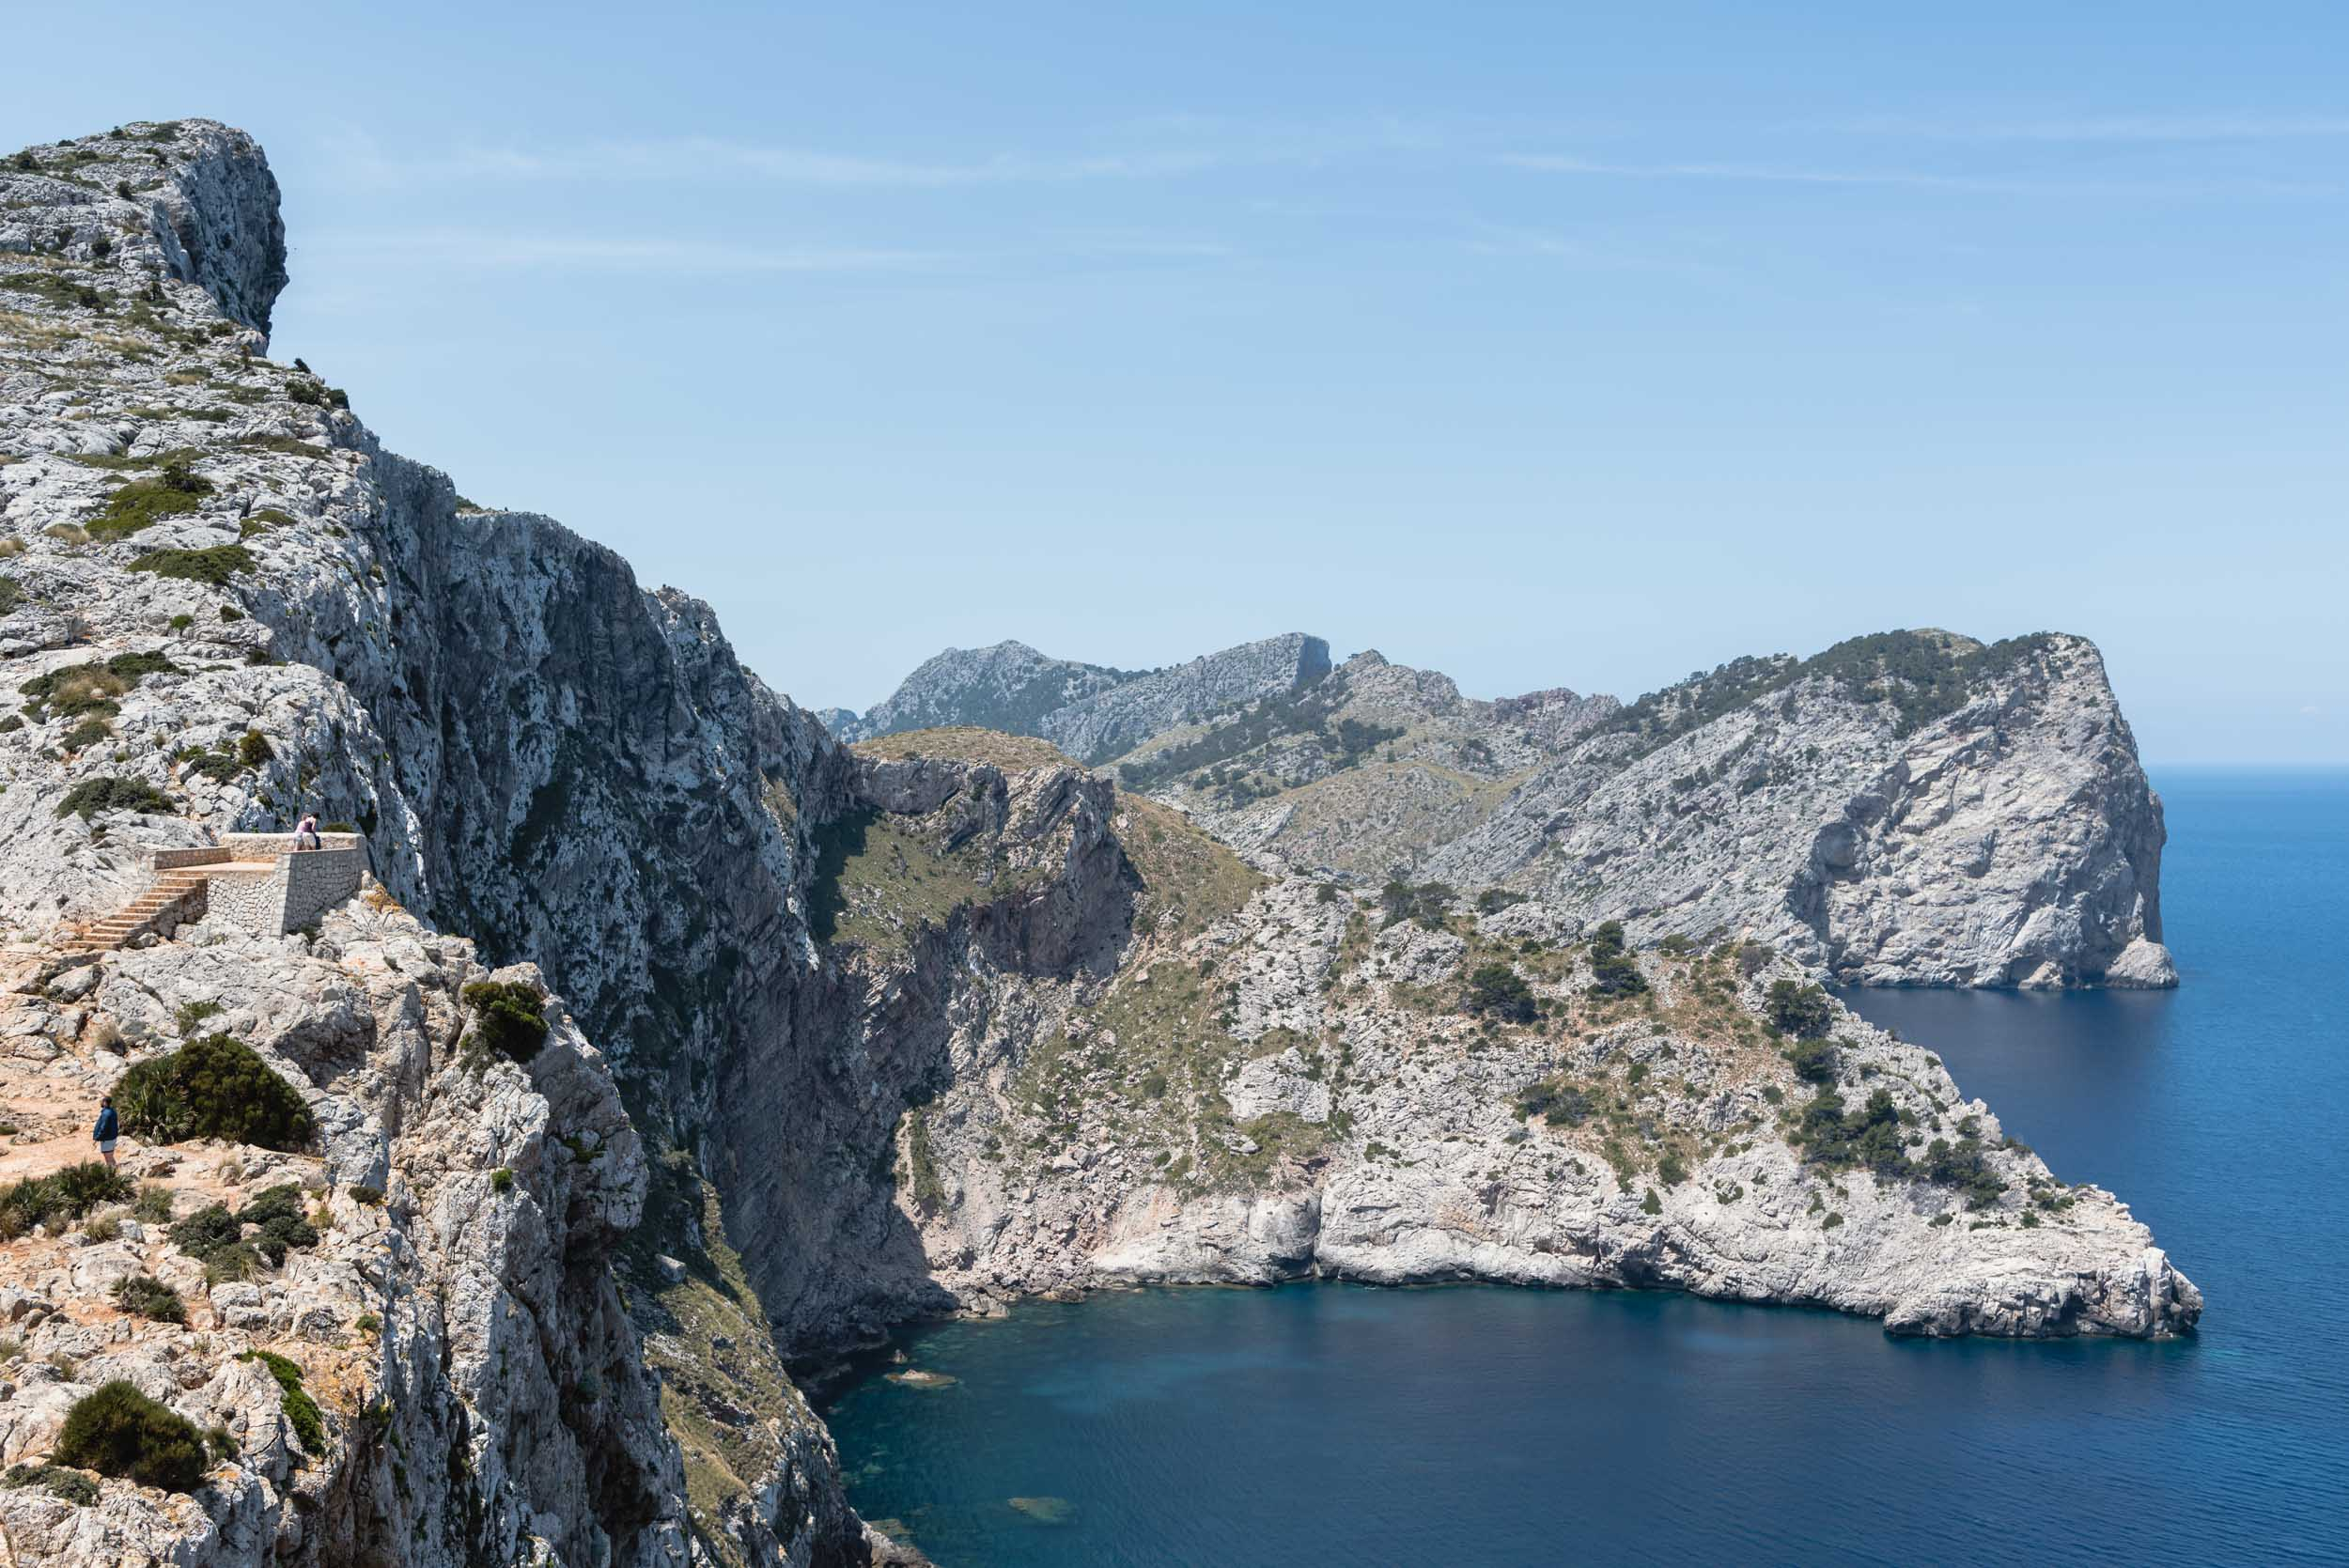 Ocean from Mirador lookout Mallorca